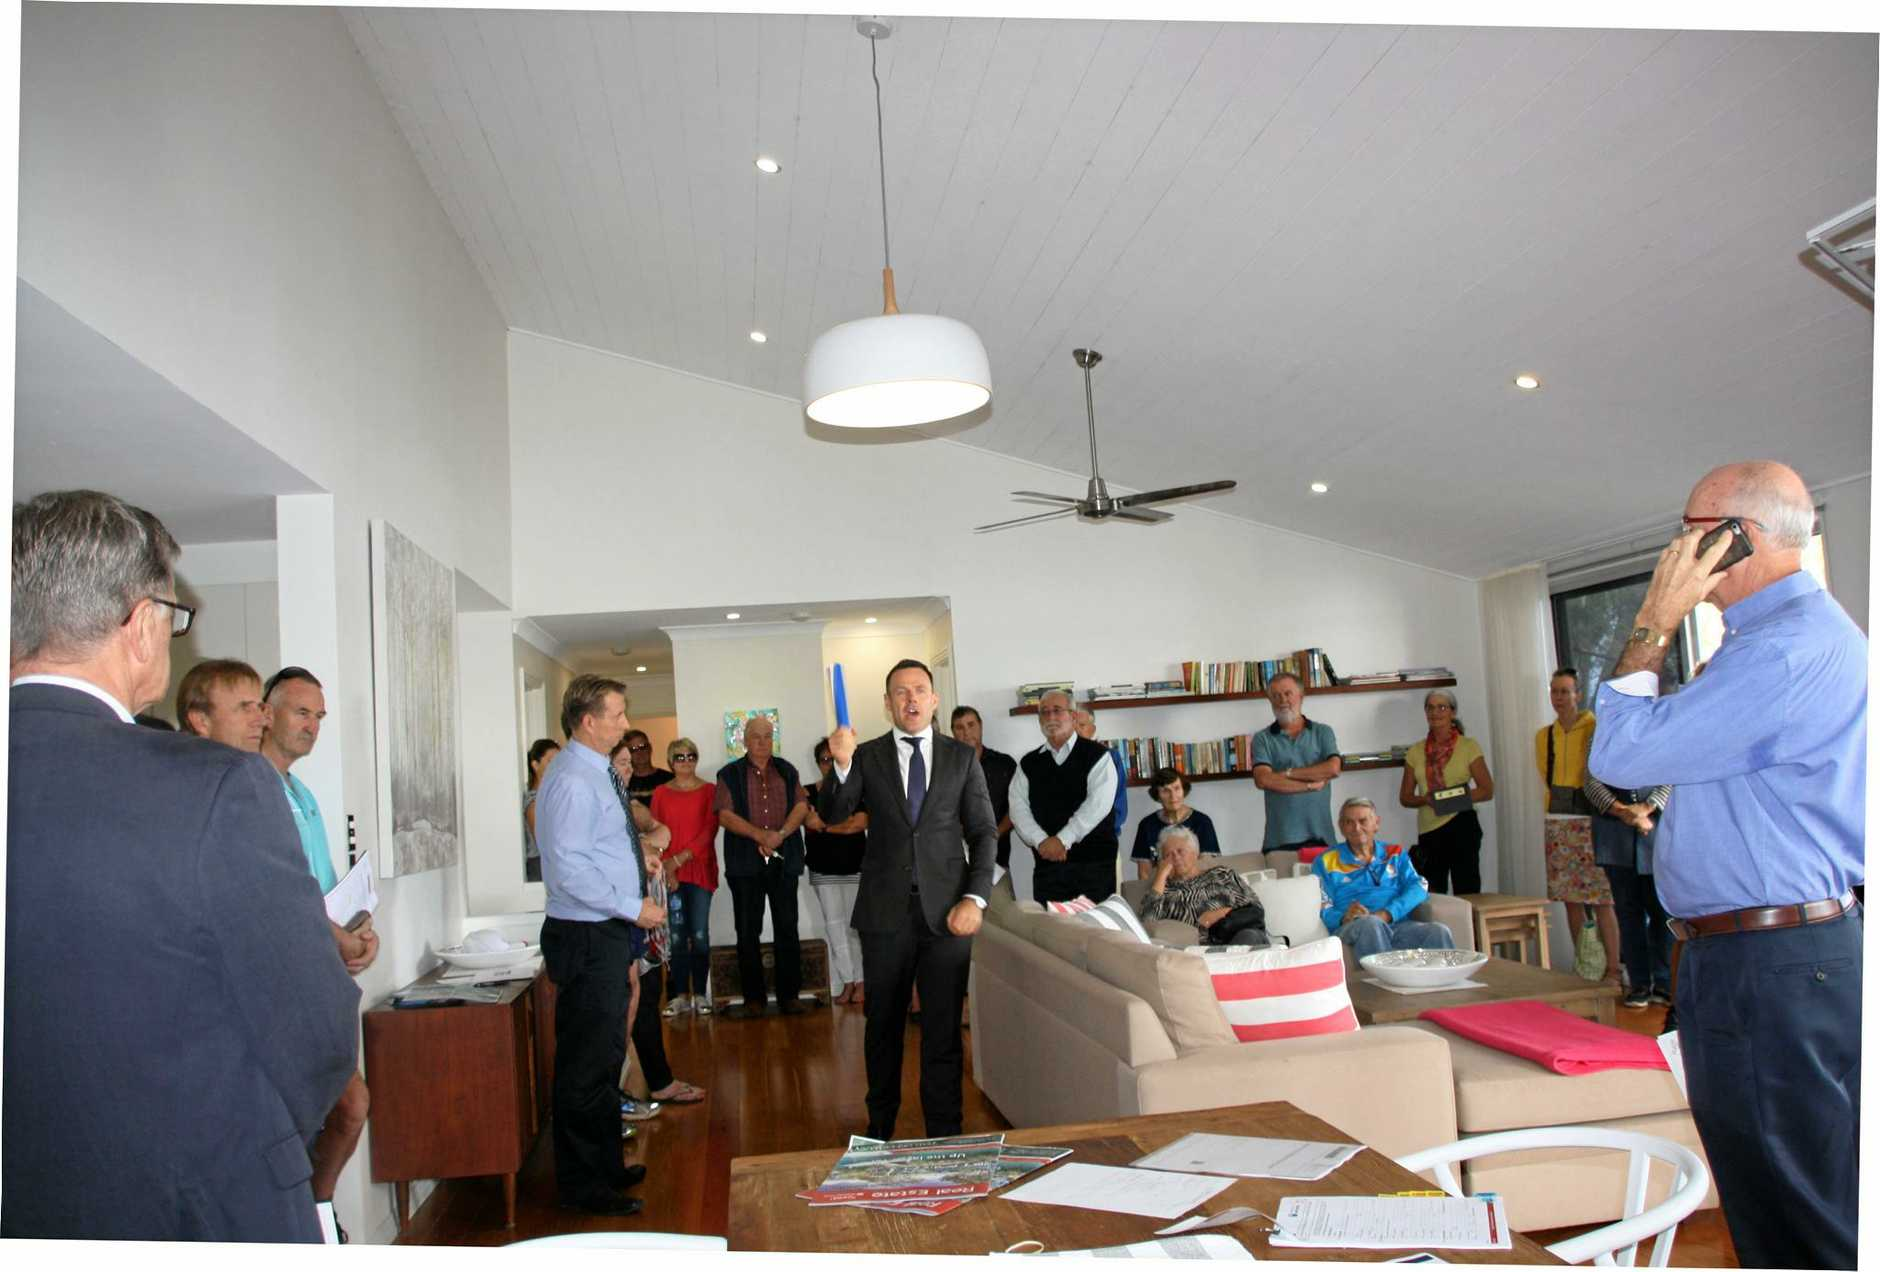 There was strong bidding and a crowd of about 70 for the auction of 4 River Gums, 3 Russell St, Noosaville.